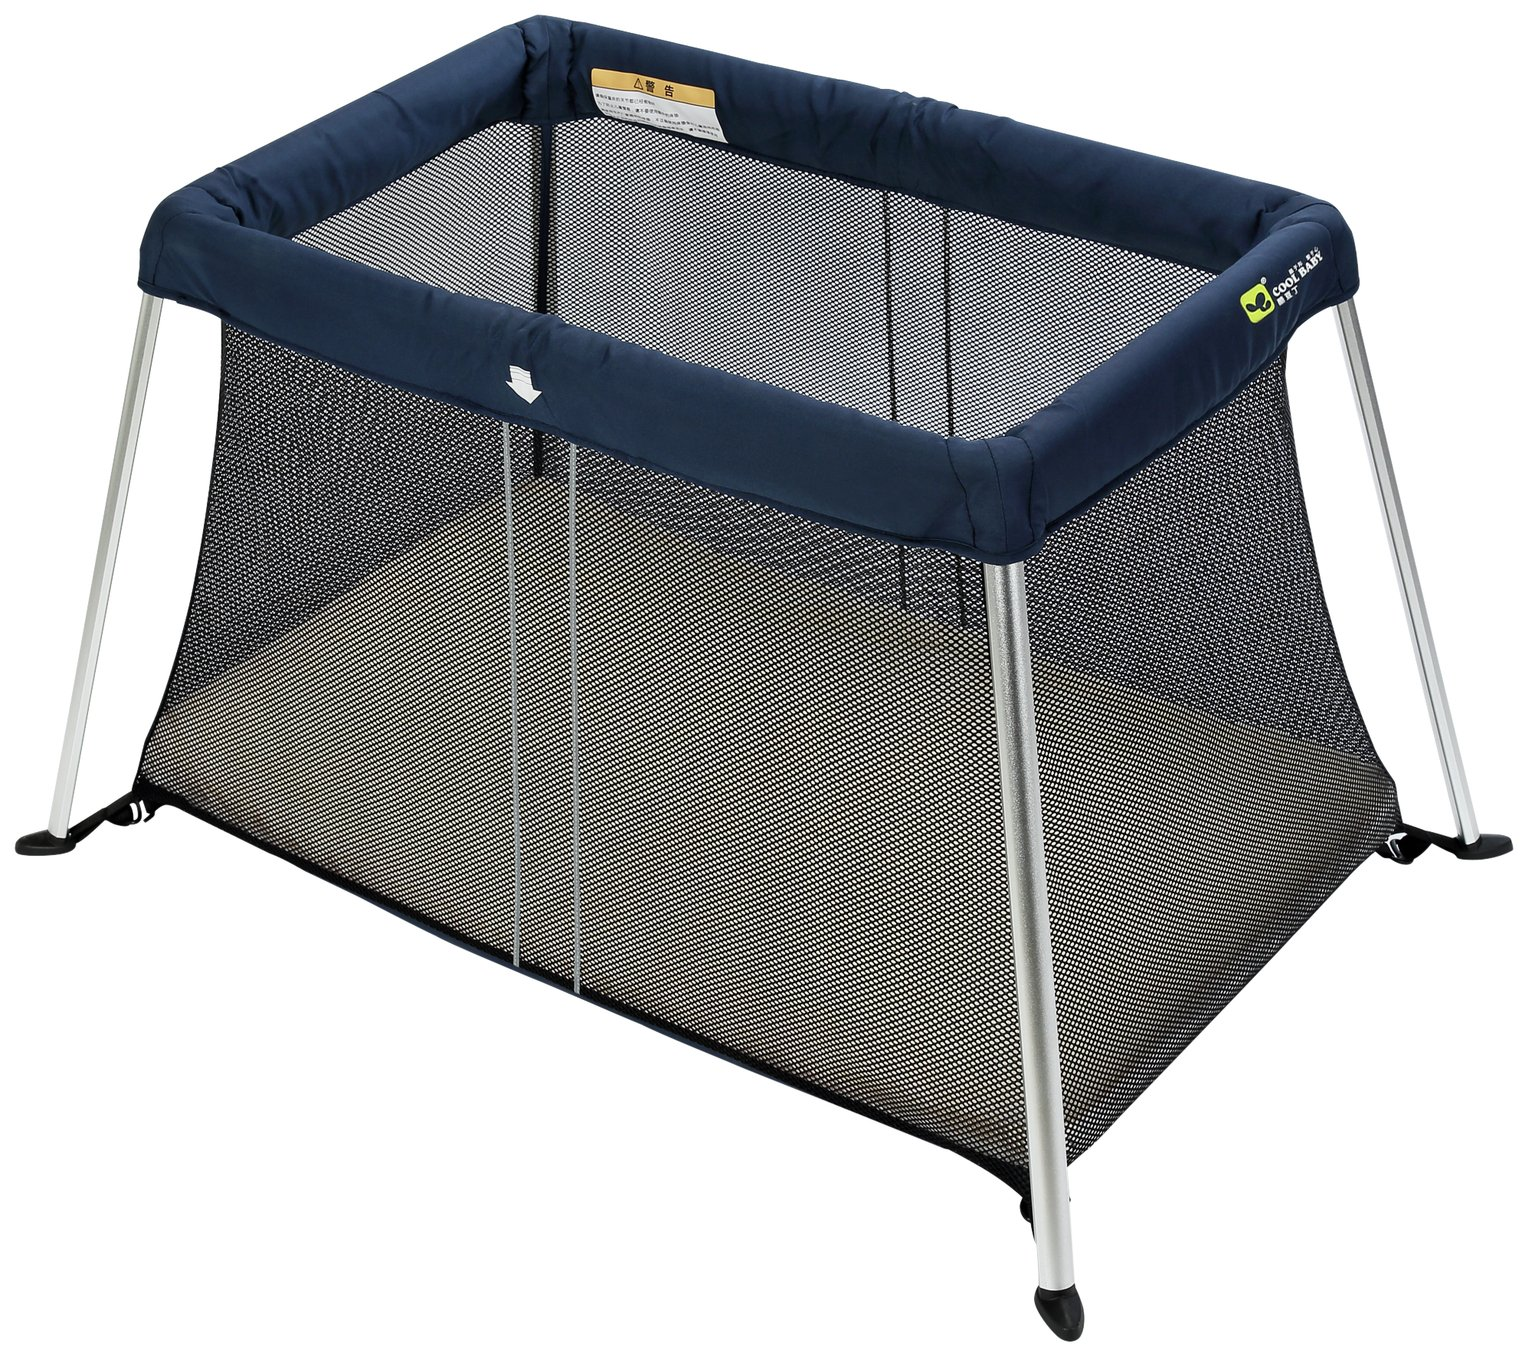 Image of Cuggl Deluxe Superlight Travel Cot